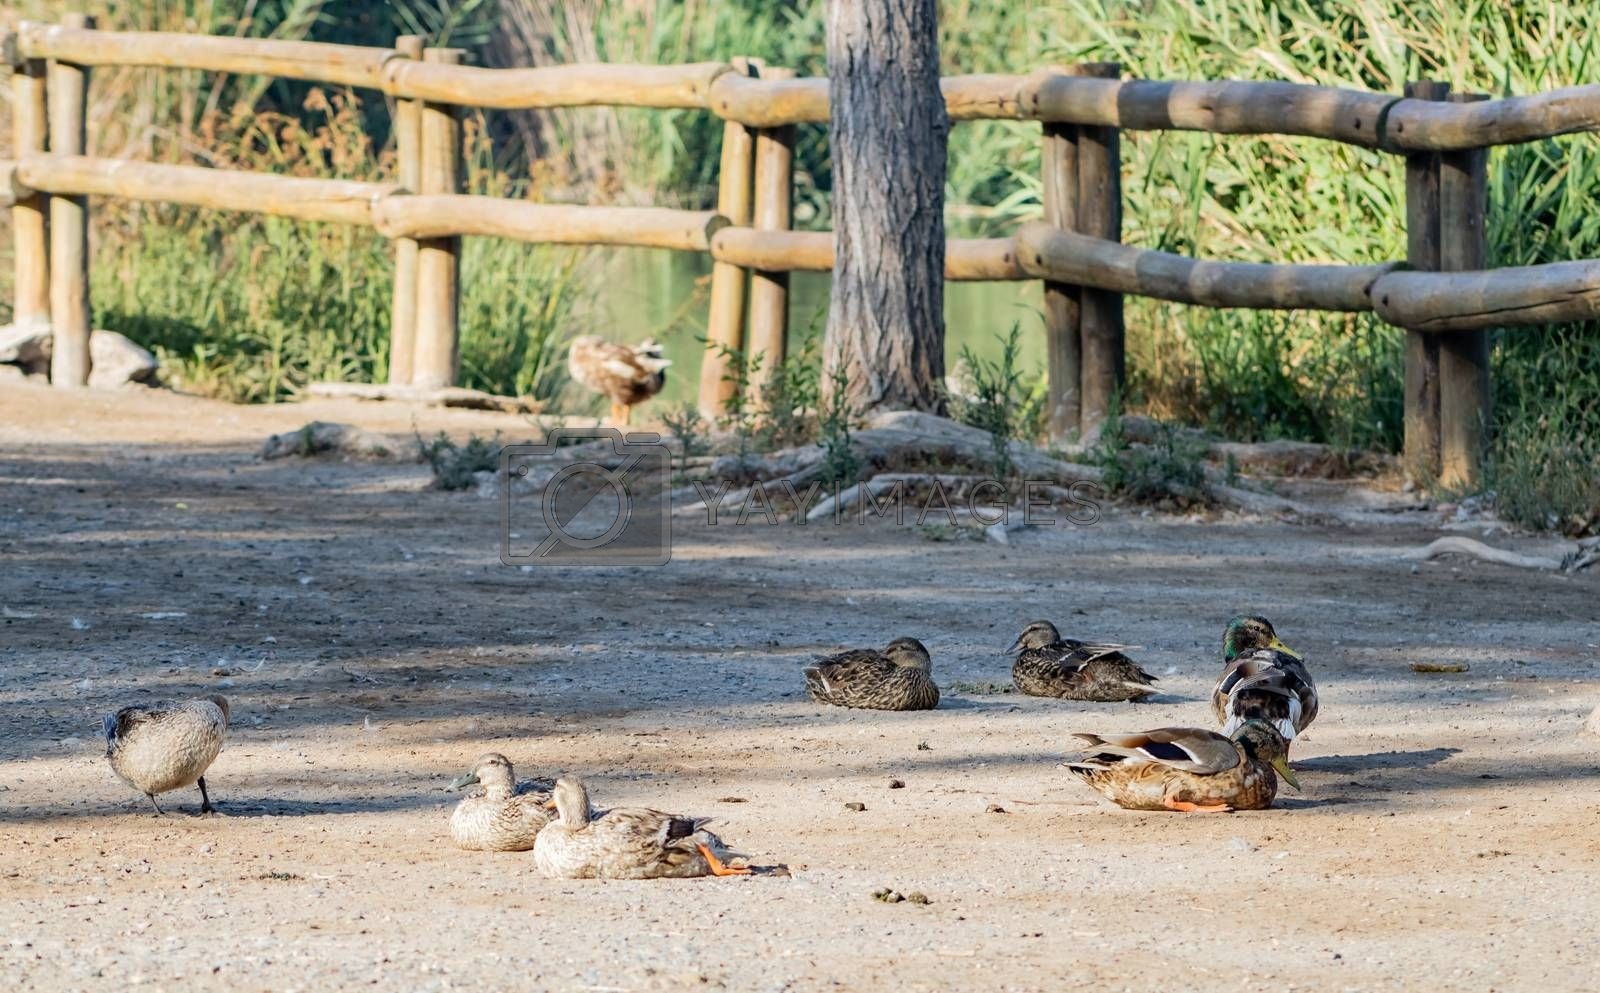 Ducks in freedom in the natural landscape of Nules